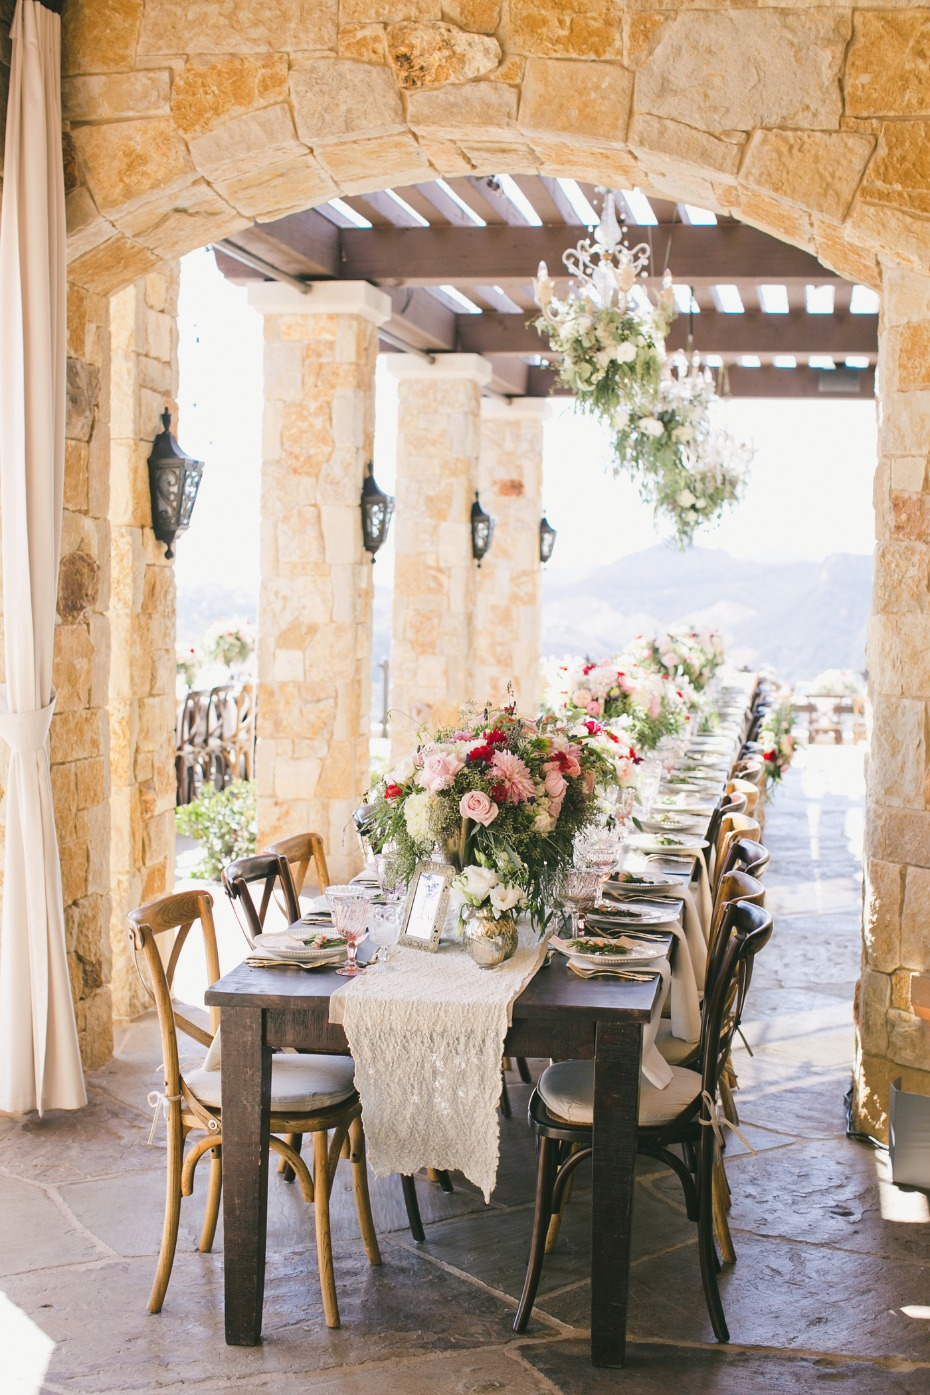 Dreamy tablescape captured by Onelove Photography